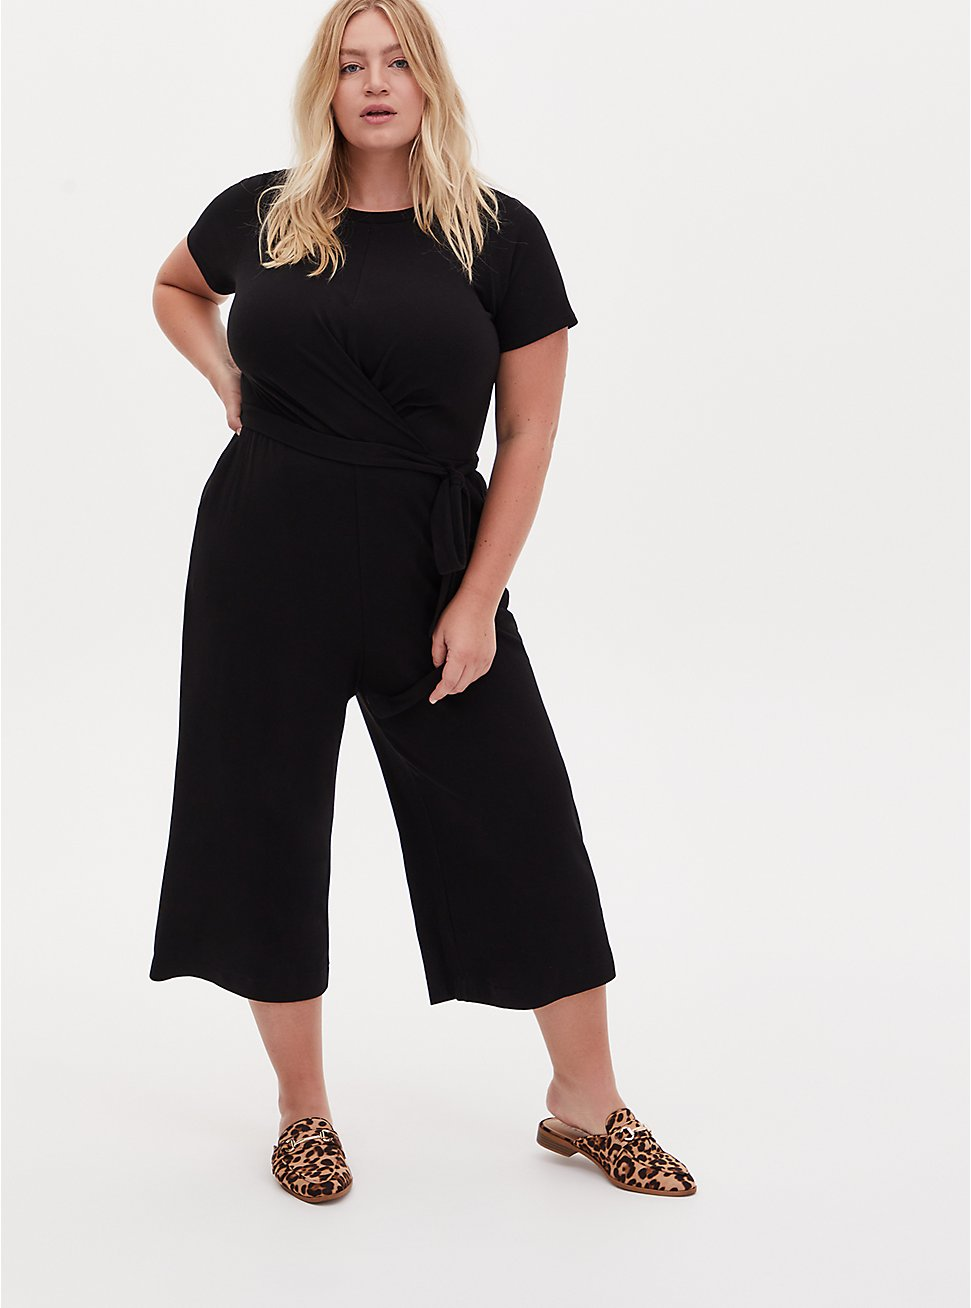 Black Rib Twist Front Self Tie Culotte Jumpsuit , DEEP BLACK, hi-res